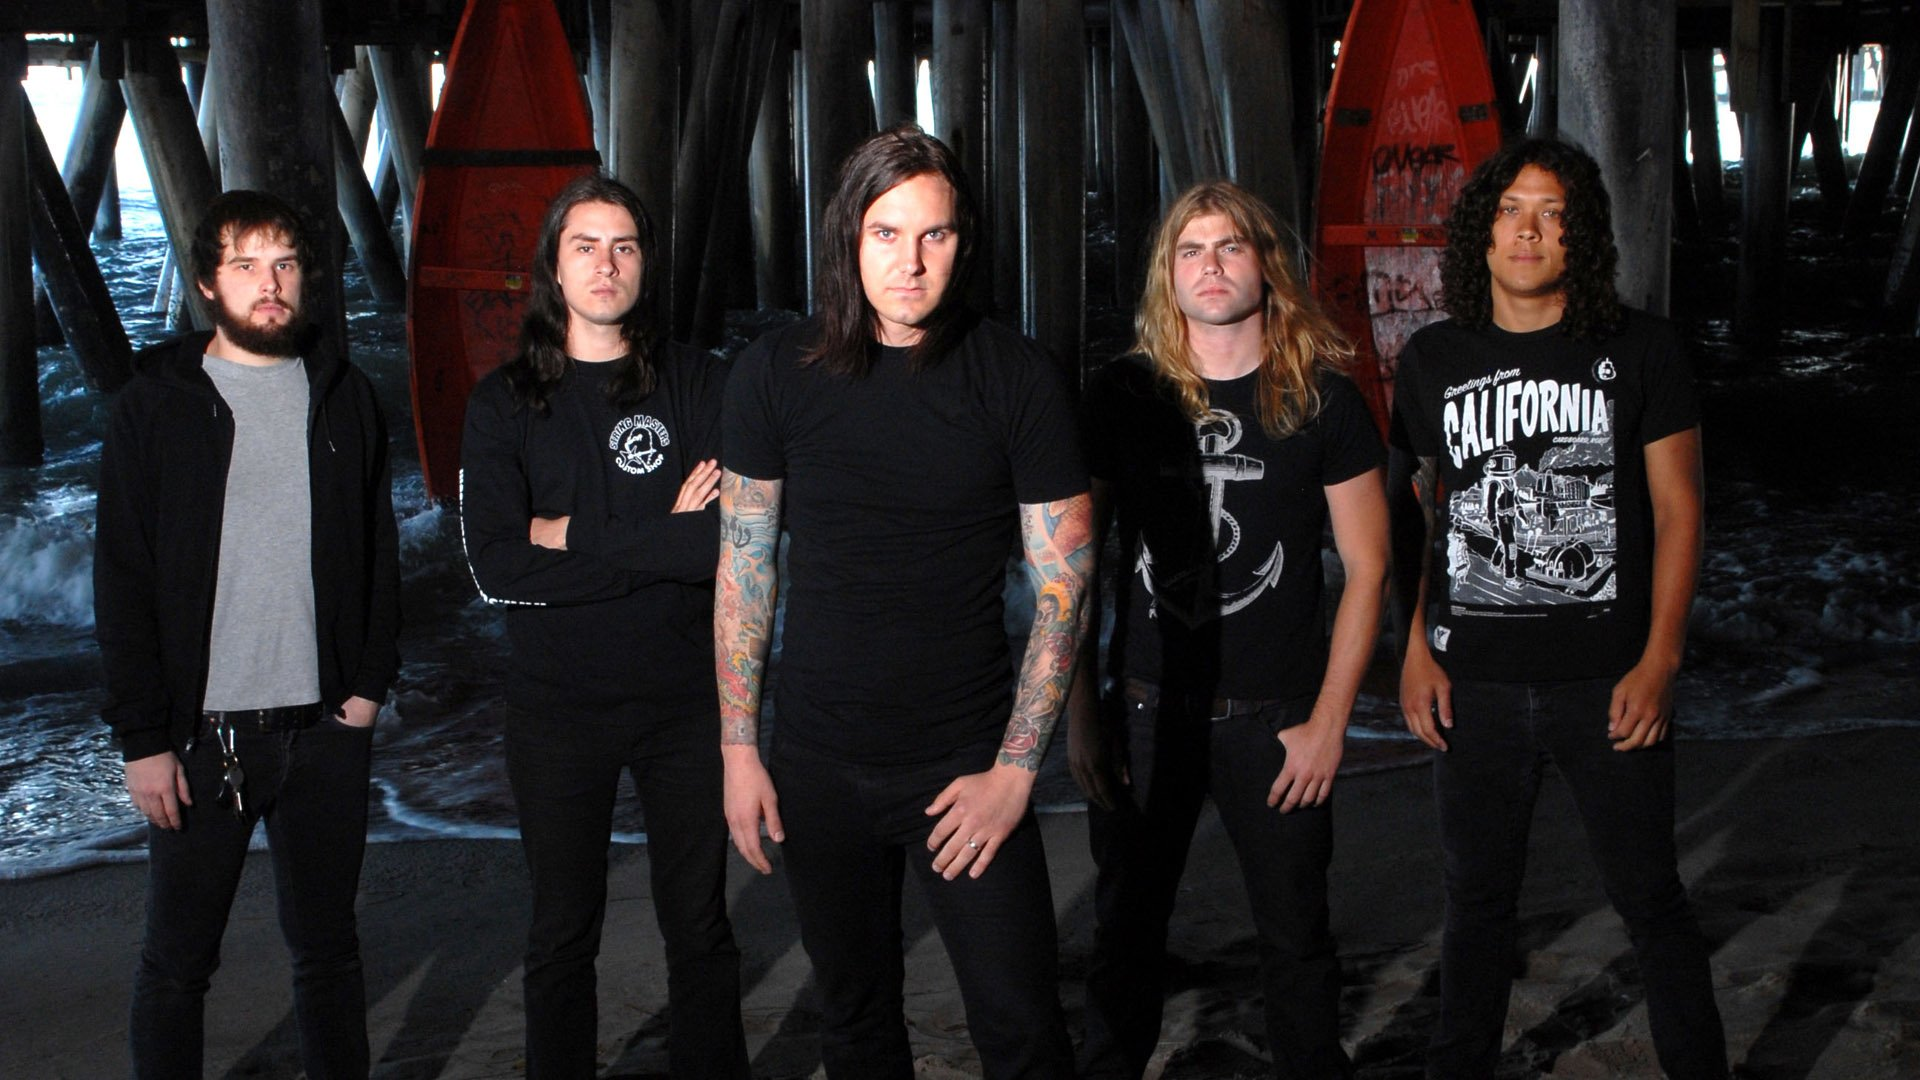 As I Lay Dying Hd Wallpaper Background Image 1920x1080 Id